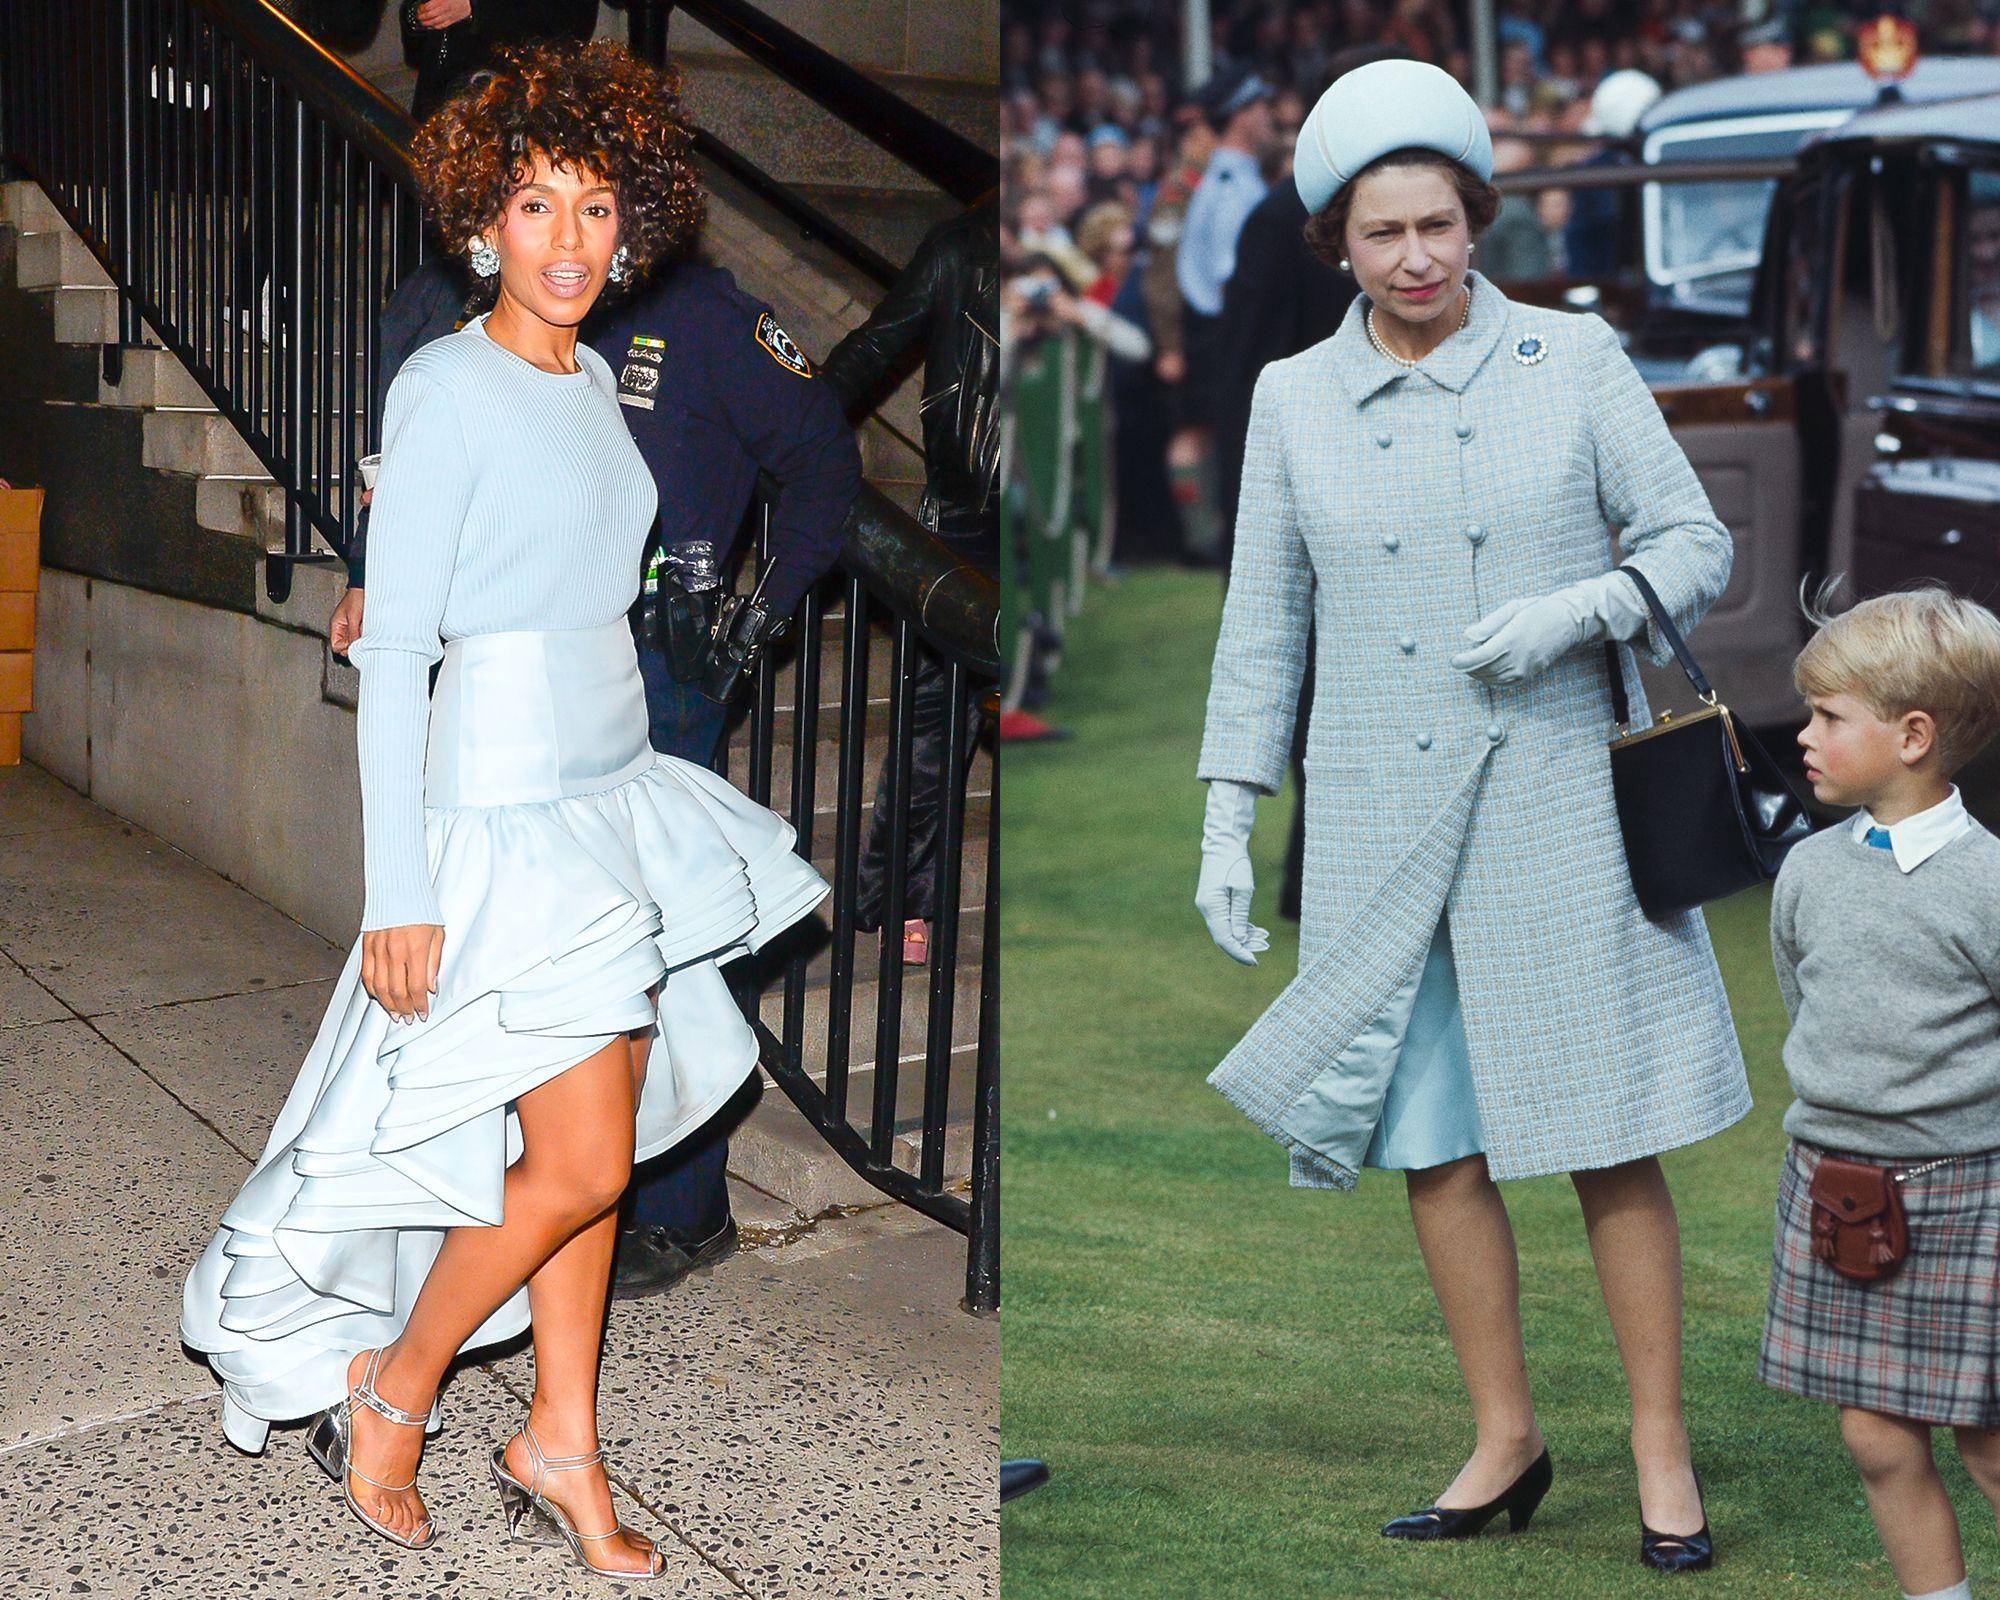 Kerry Washington vs. the Queen